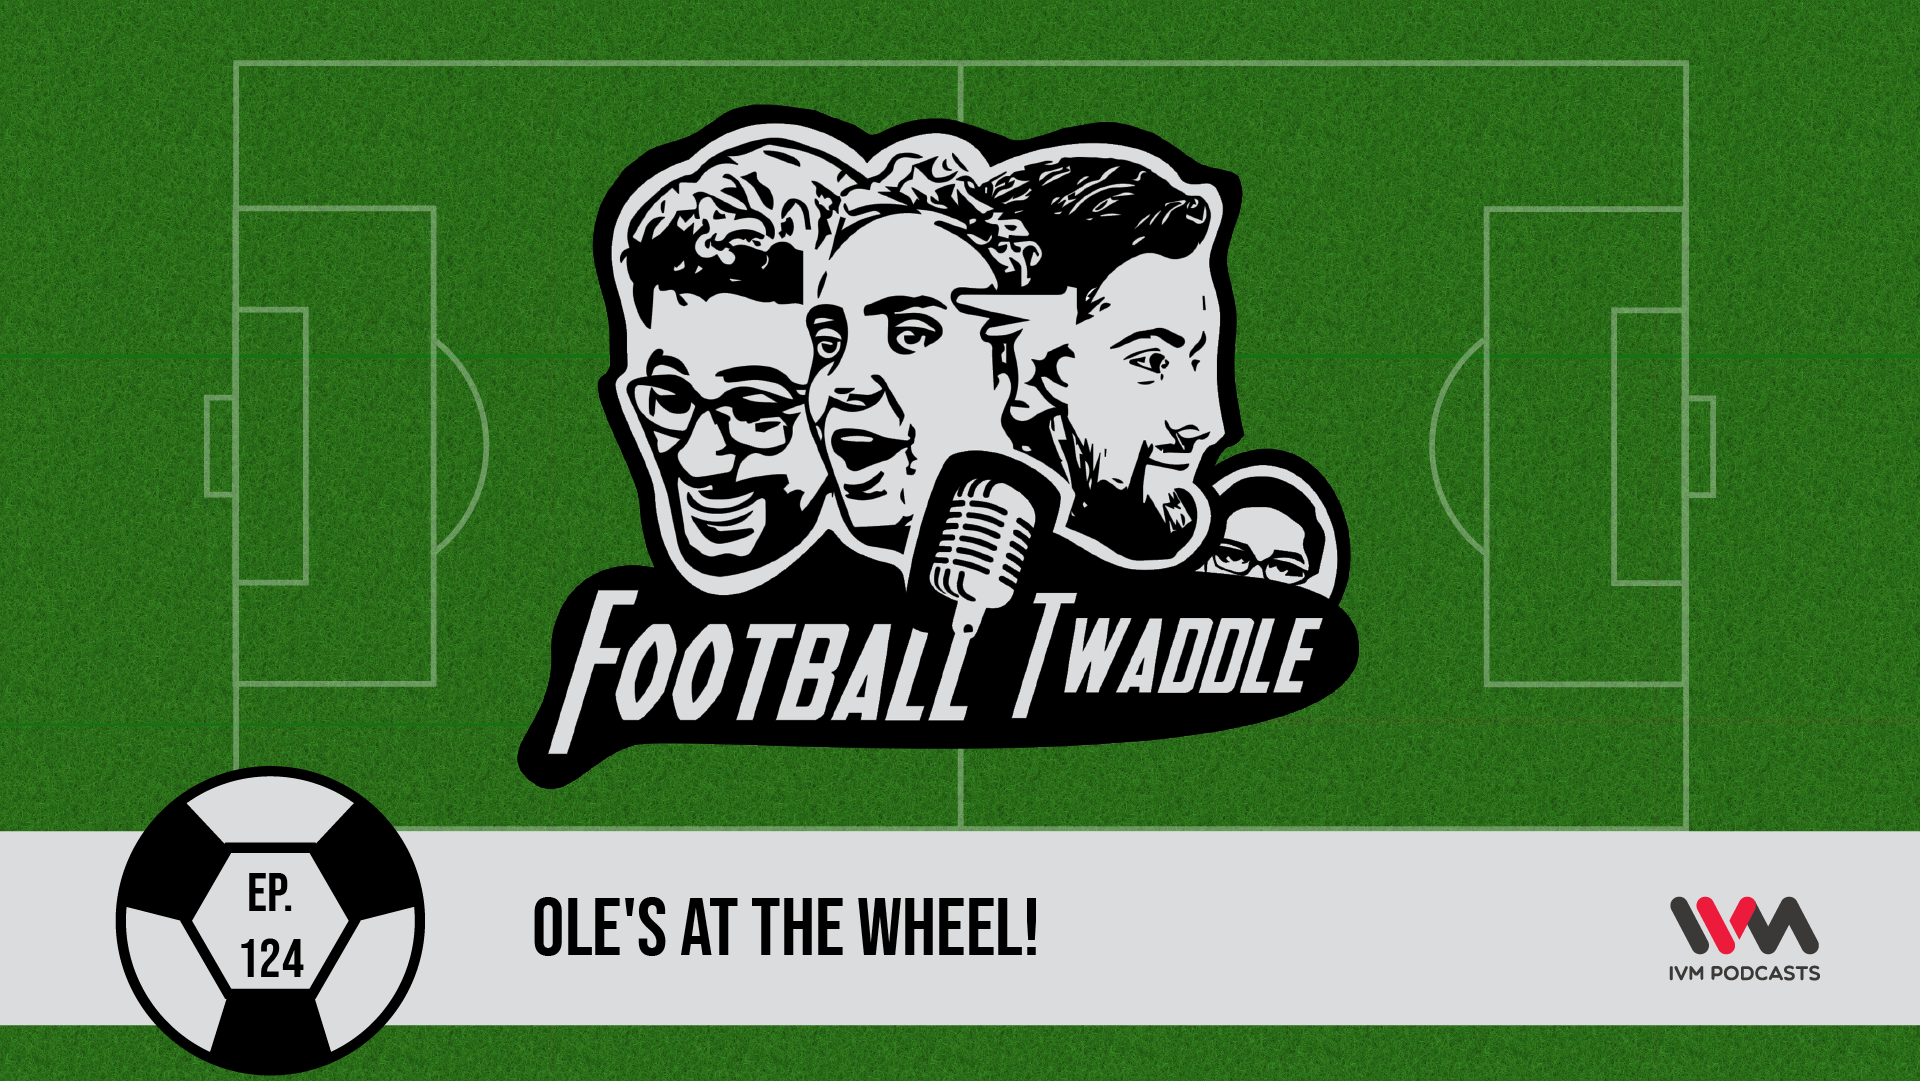 FootballTwaddleEpisode124.png